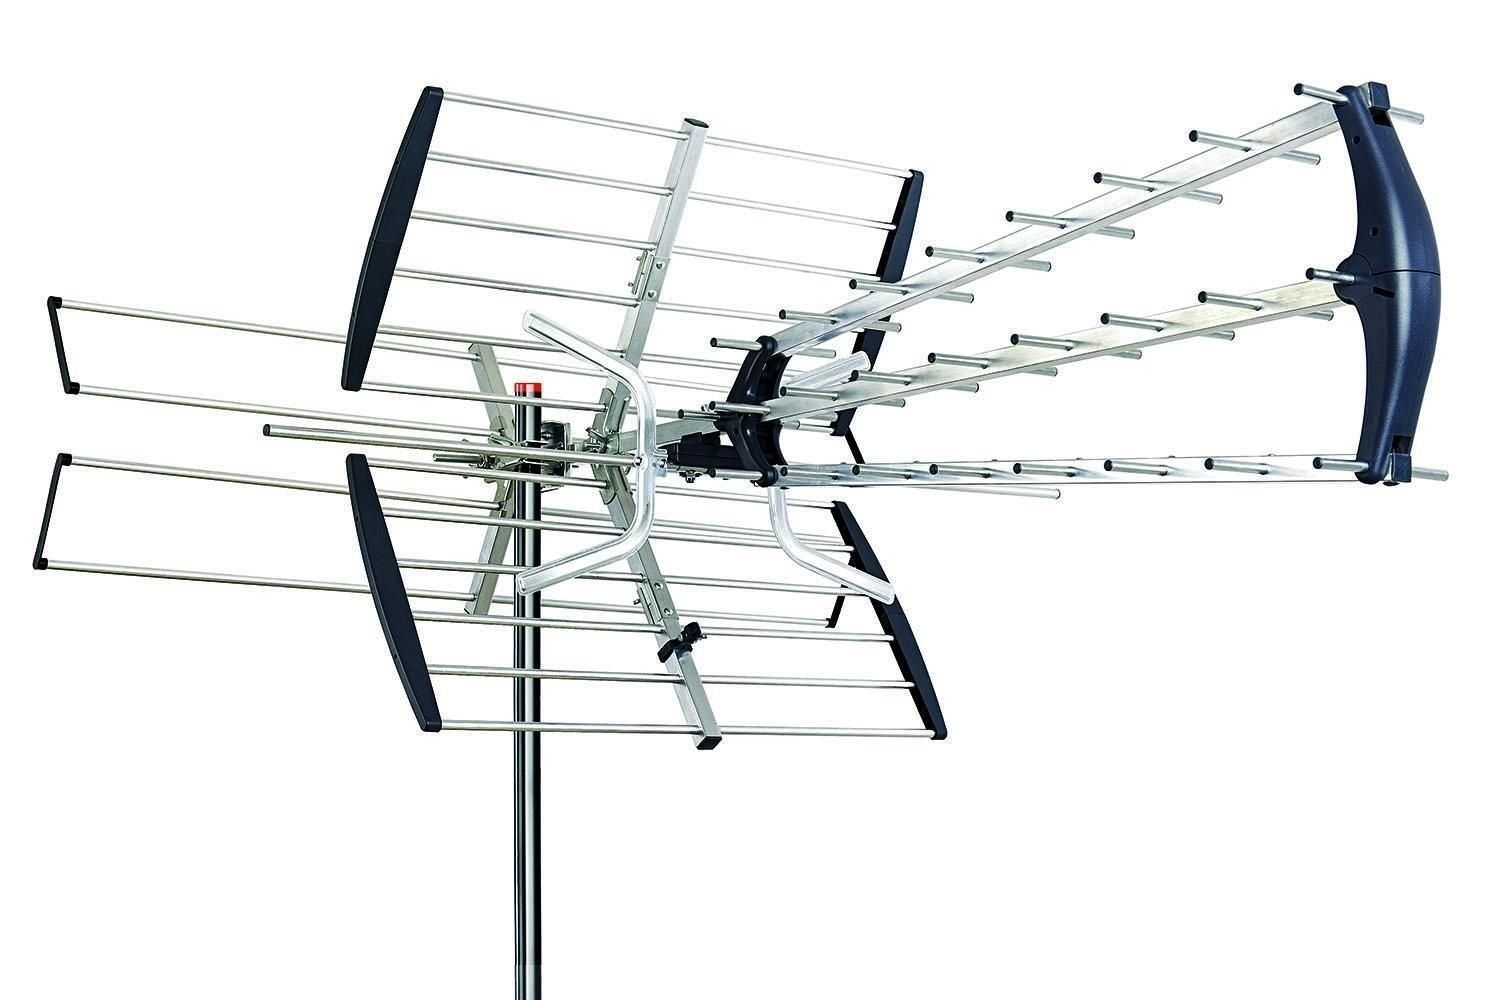 Antenna Powerful Than You Think Esky Hg 997 1080p Hd Ready Directional Hdtv Dtv Amplifier Outdoor Antenna Built Diy Tv Antenna Television Antenna Tv Antenna